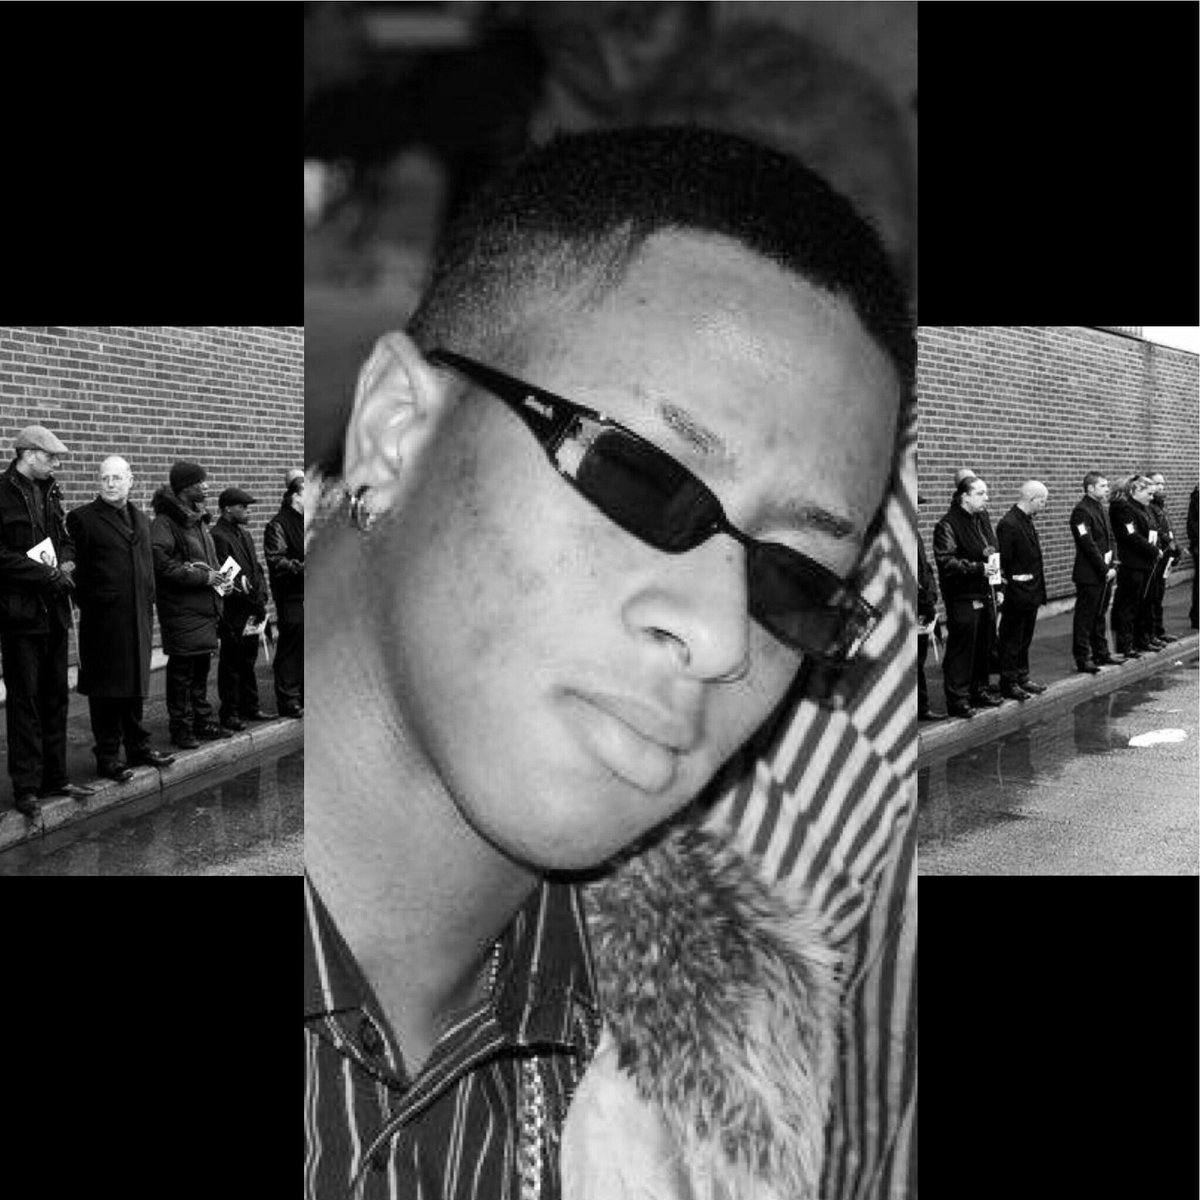 Remembering #mikeybovell  #teampersona #ourboys #3yrs #wemissyou  @PersonaHrLtd<br>http://pic.twitter.com/dCzi1vBBZr